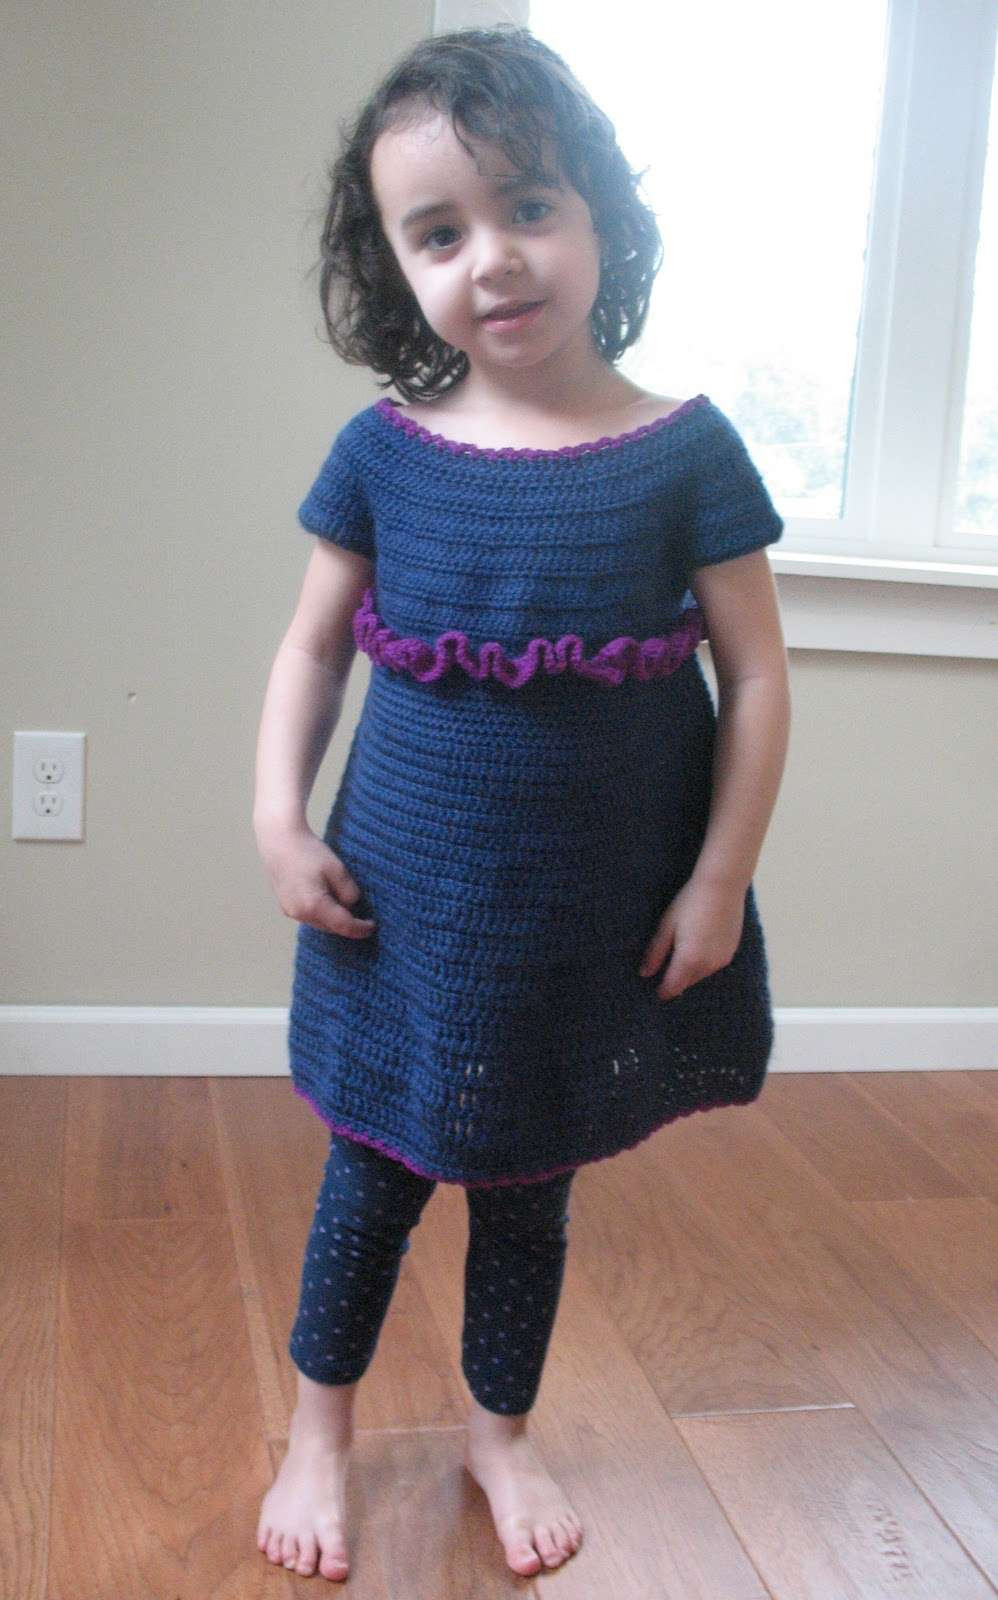 Unique 15 Beautiful Free Crochet Patterns for Girls' Dresses Crochet Little Girl Dress Of Awesome 44 Images Crochet Little Girl Dress